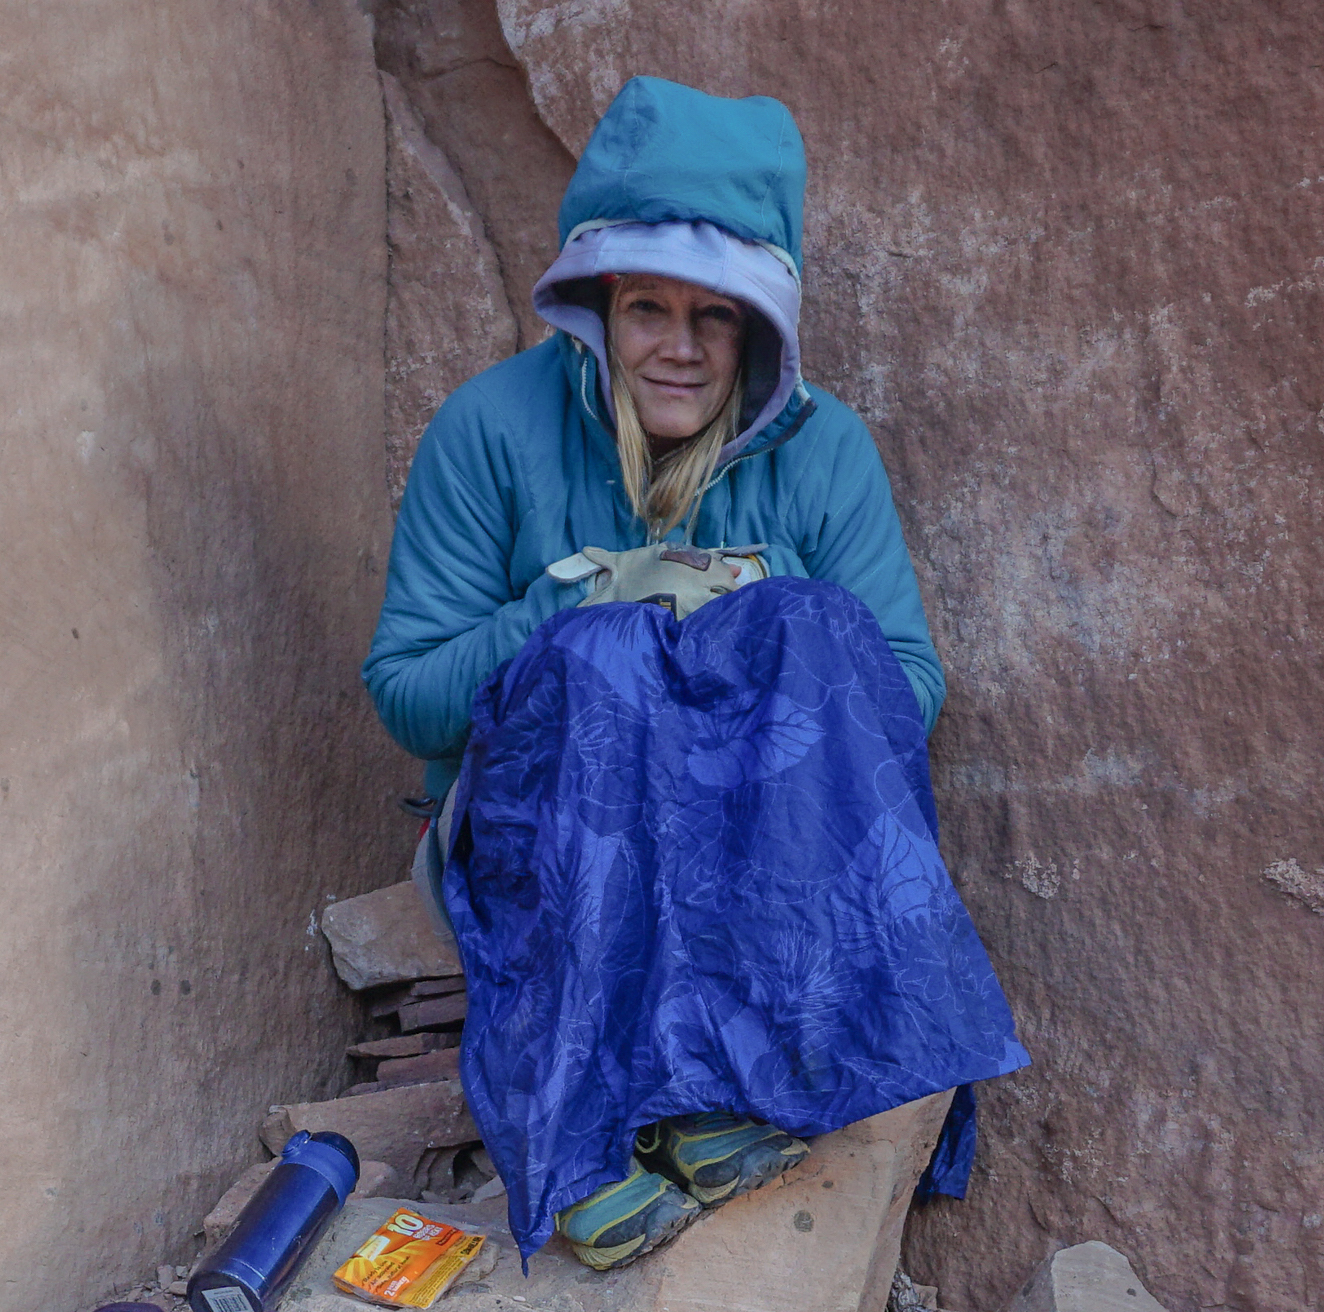 Kitty Calhoun, co-owner Chicks Climbing and Skiing layered up to stay toasty. Indian Creek, UT. ©Kitty Calhoun